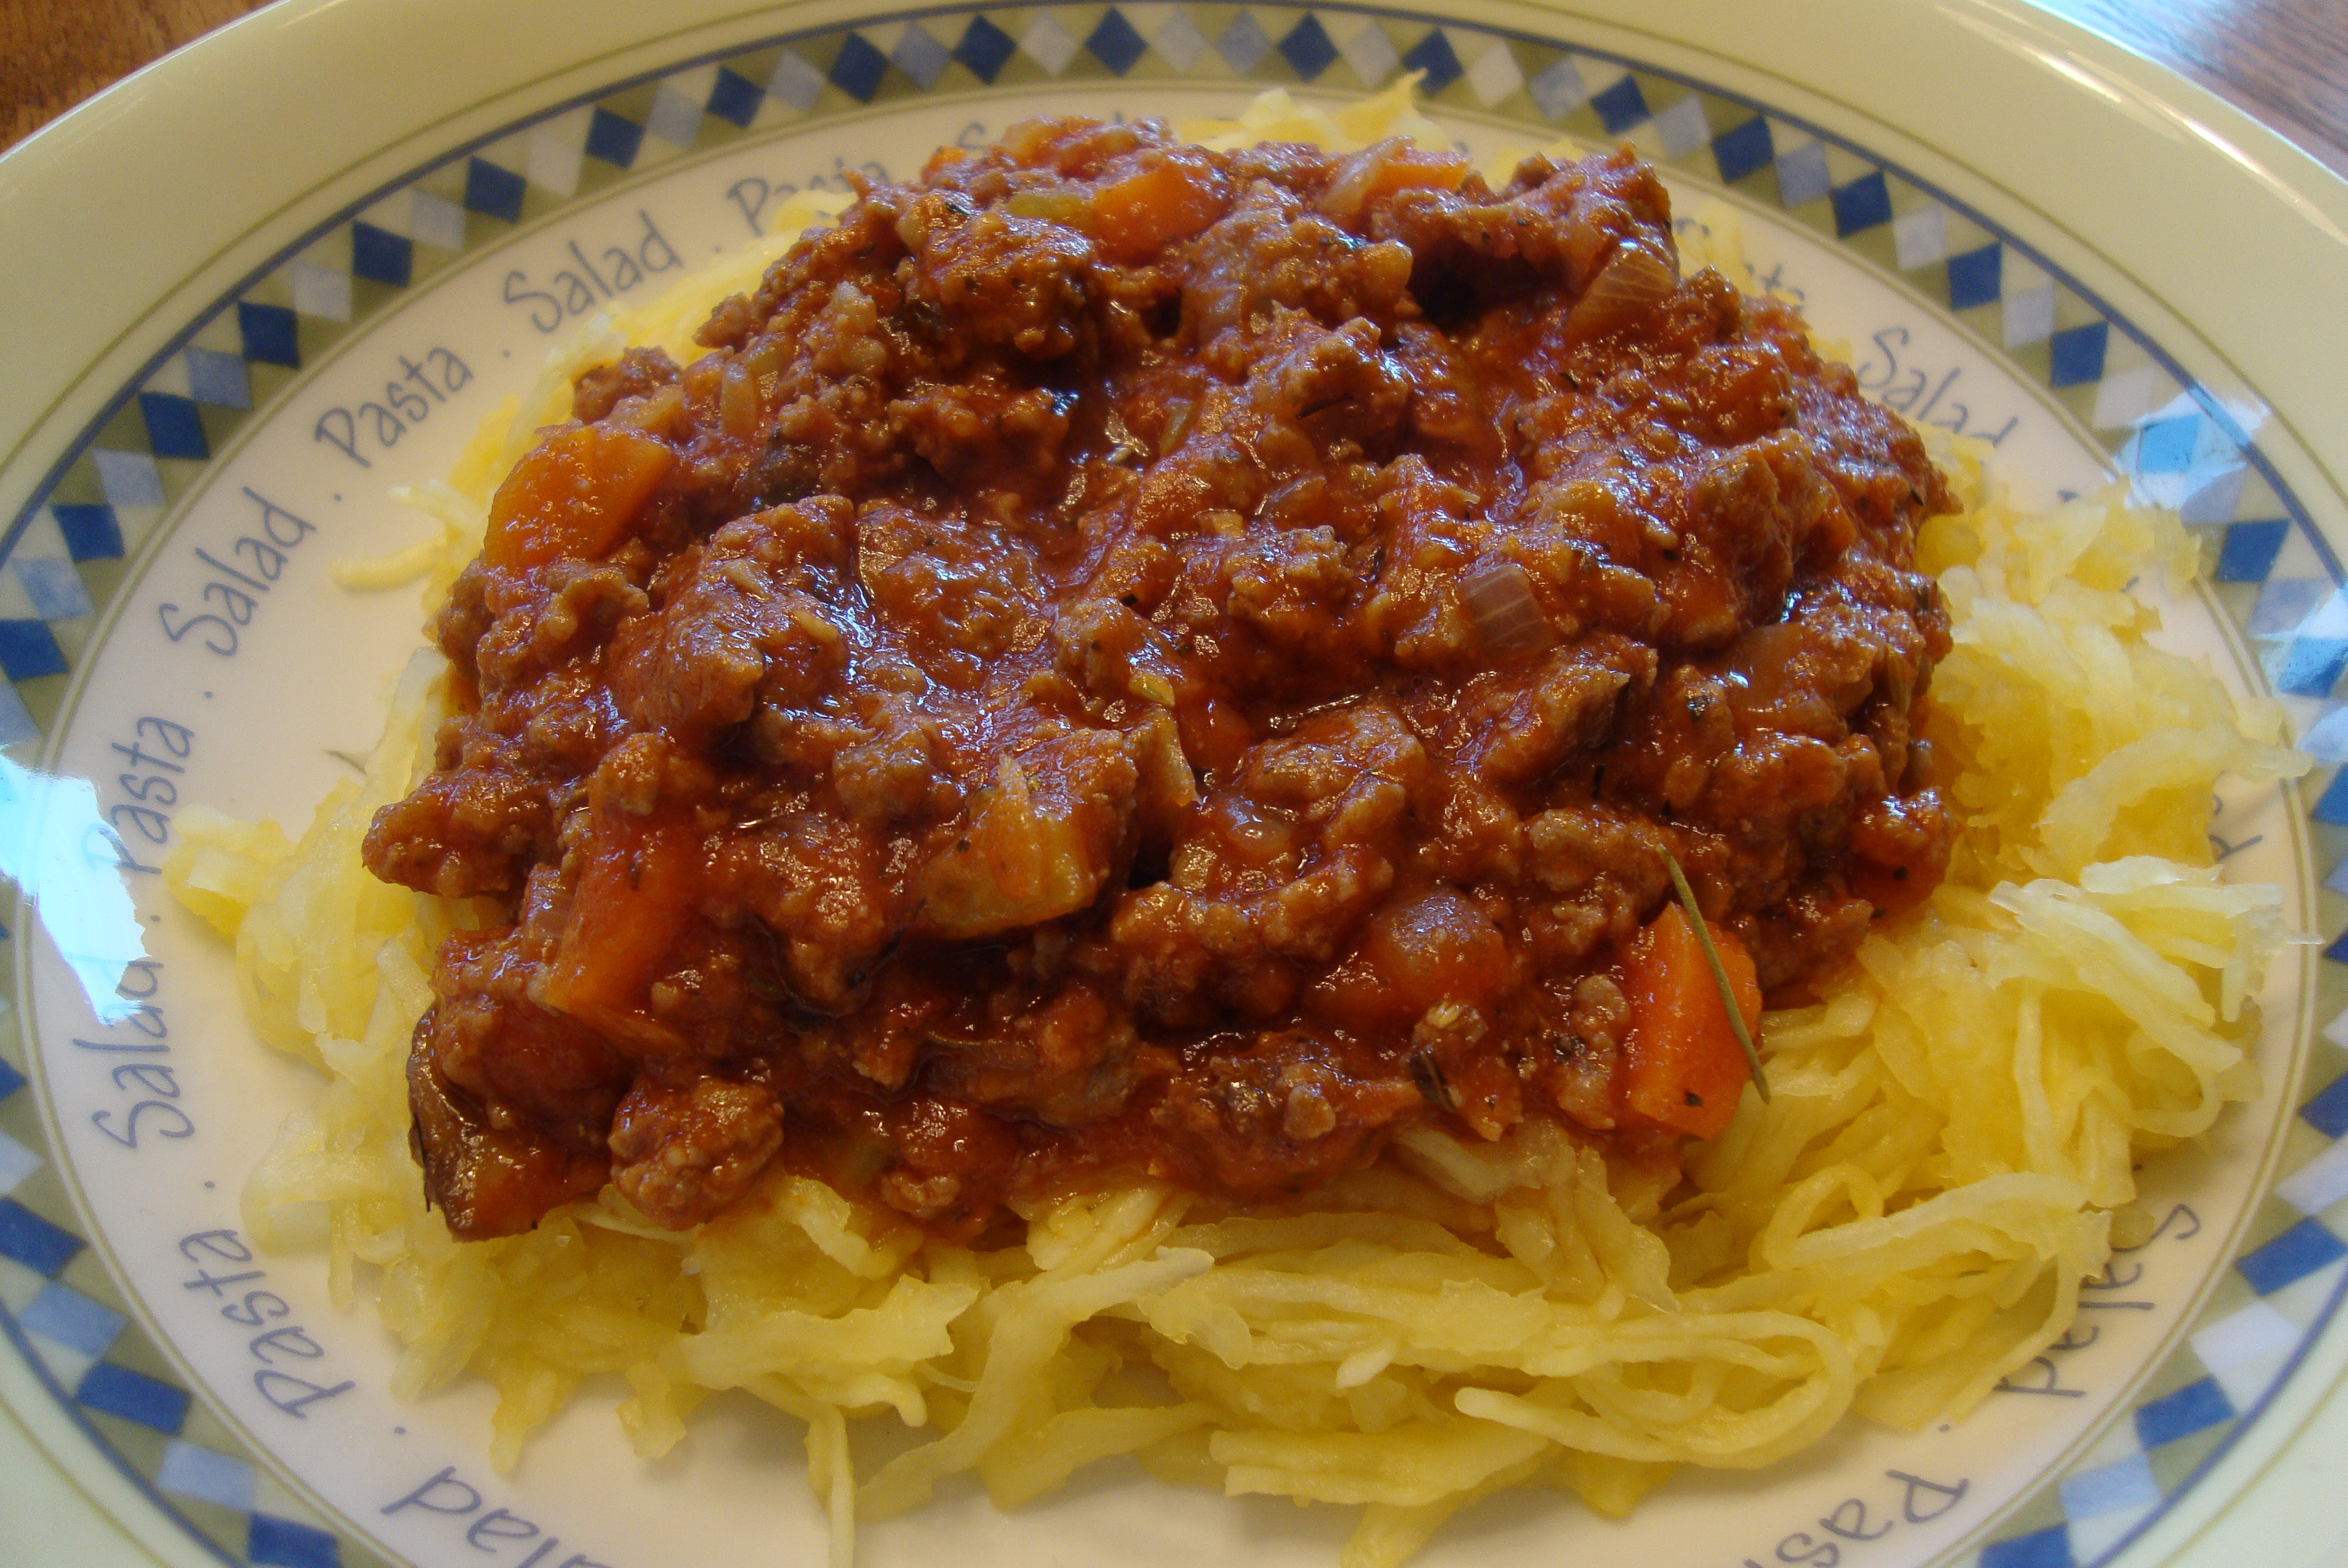 Spaghetti (Squash) with Meat Sauce